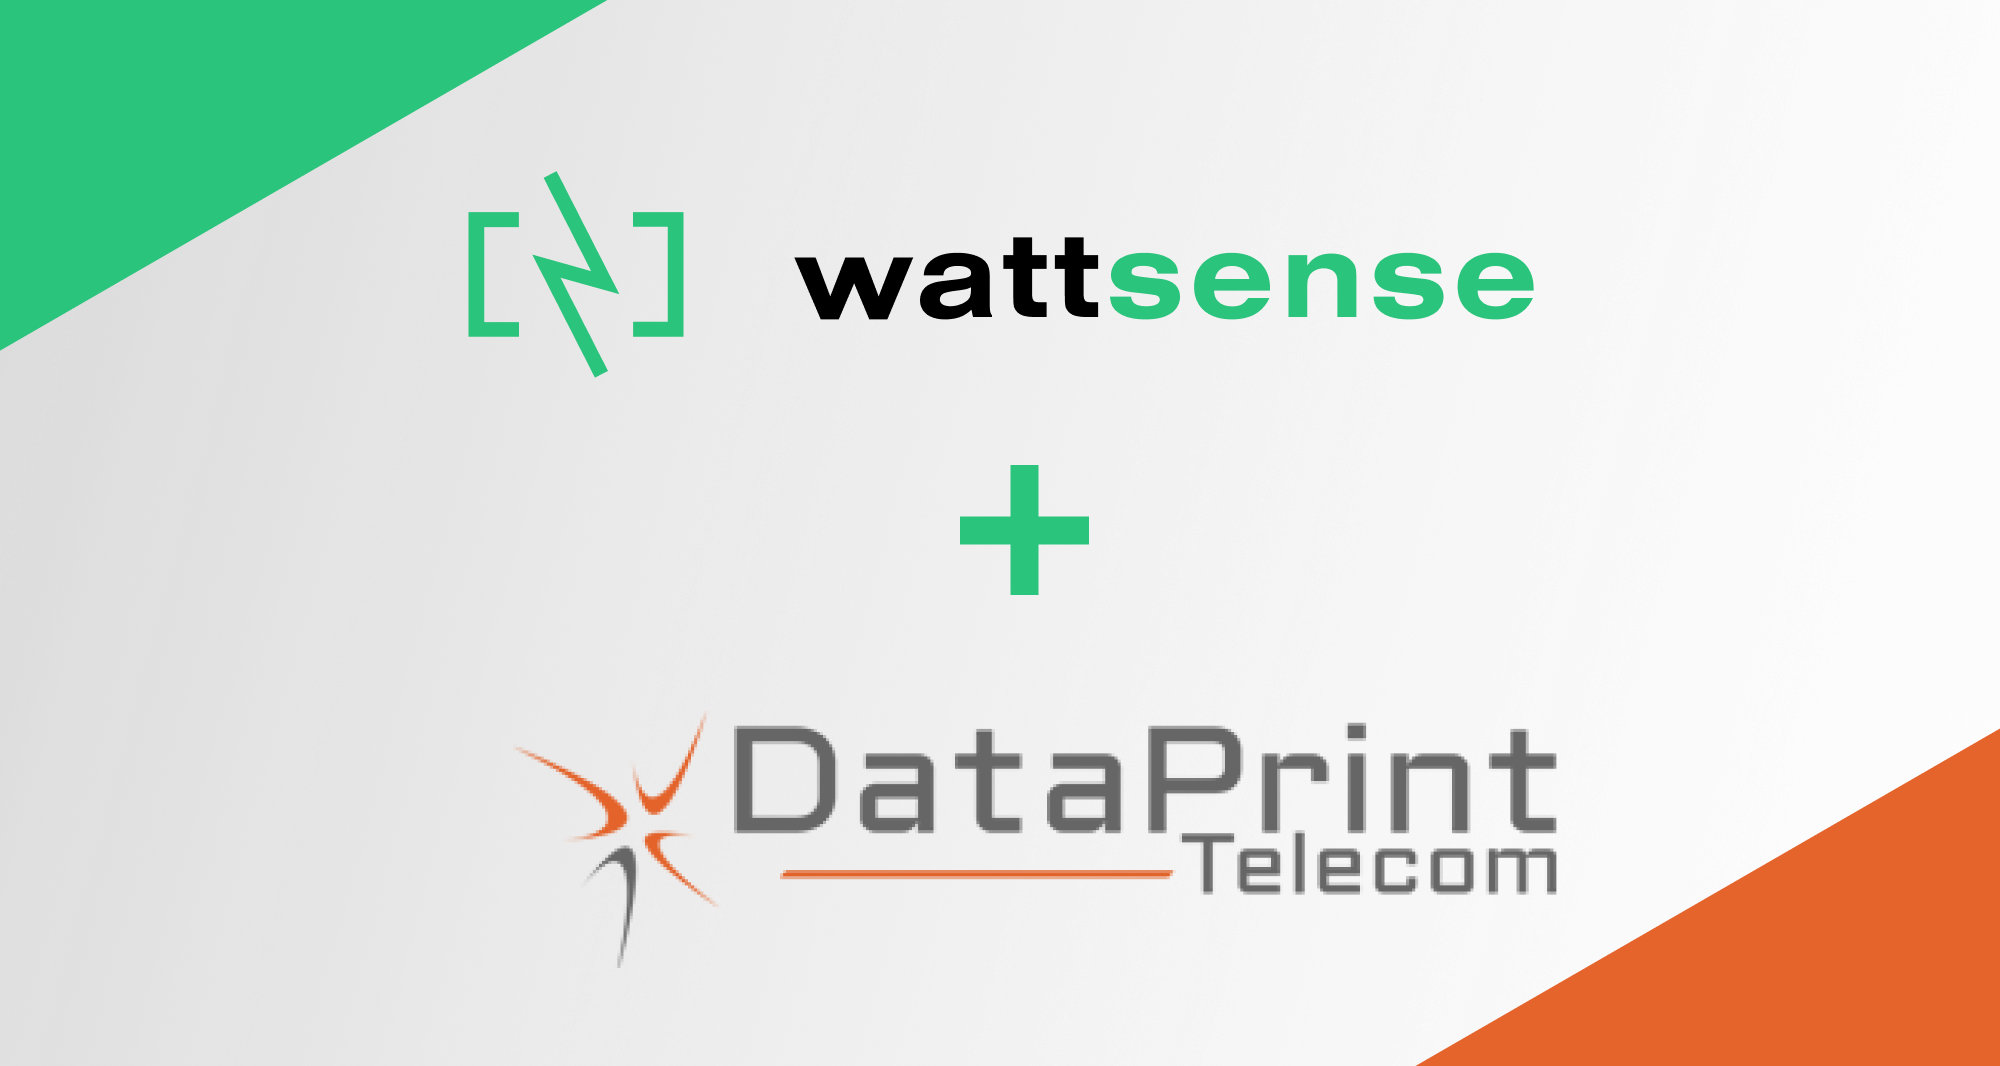 DataPrint strengthens its offering for Smart Buildings by adding Wattsense to its catalog